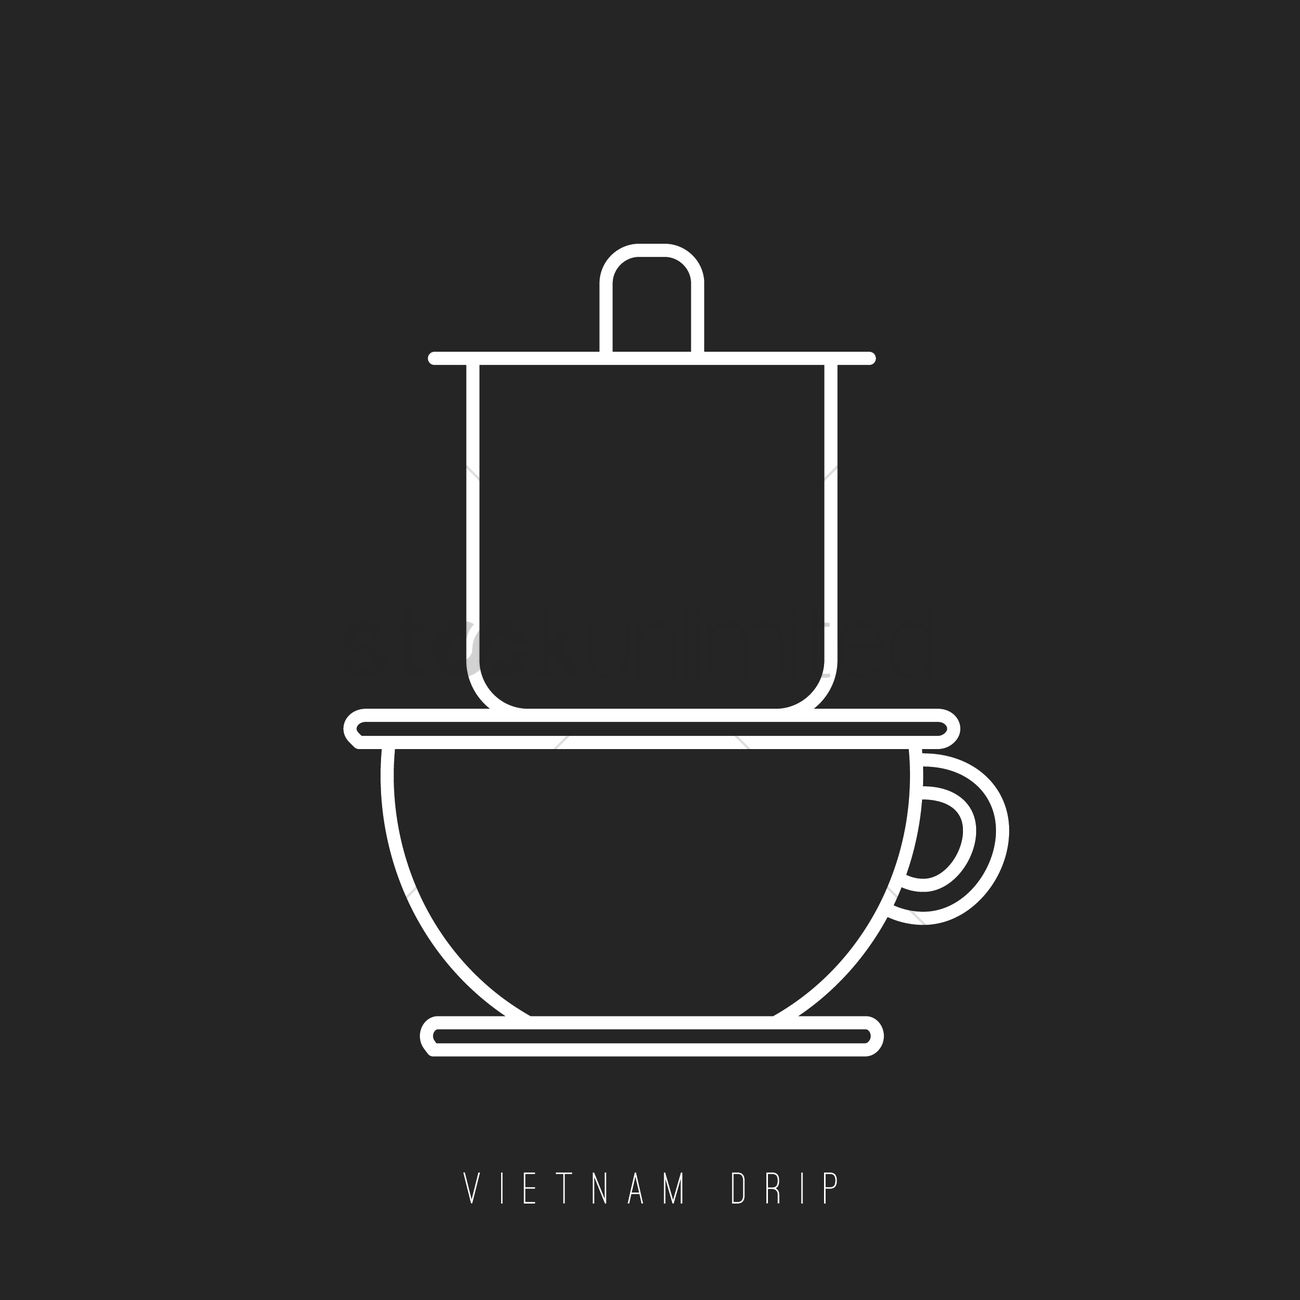 Vietnam Drip Vector Image 1995187 Stockunlimited